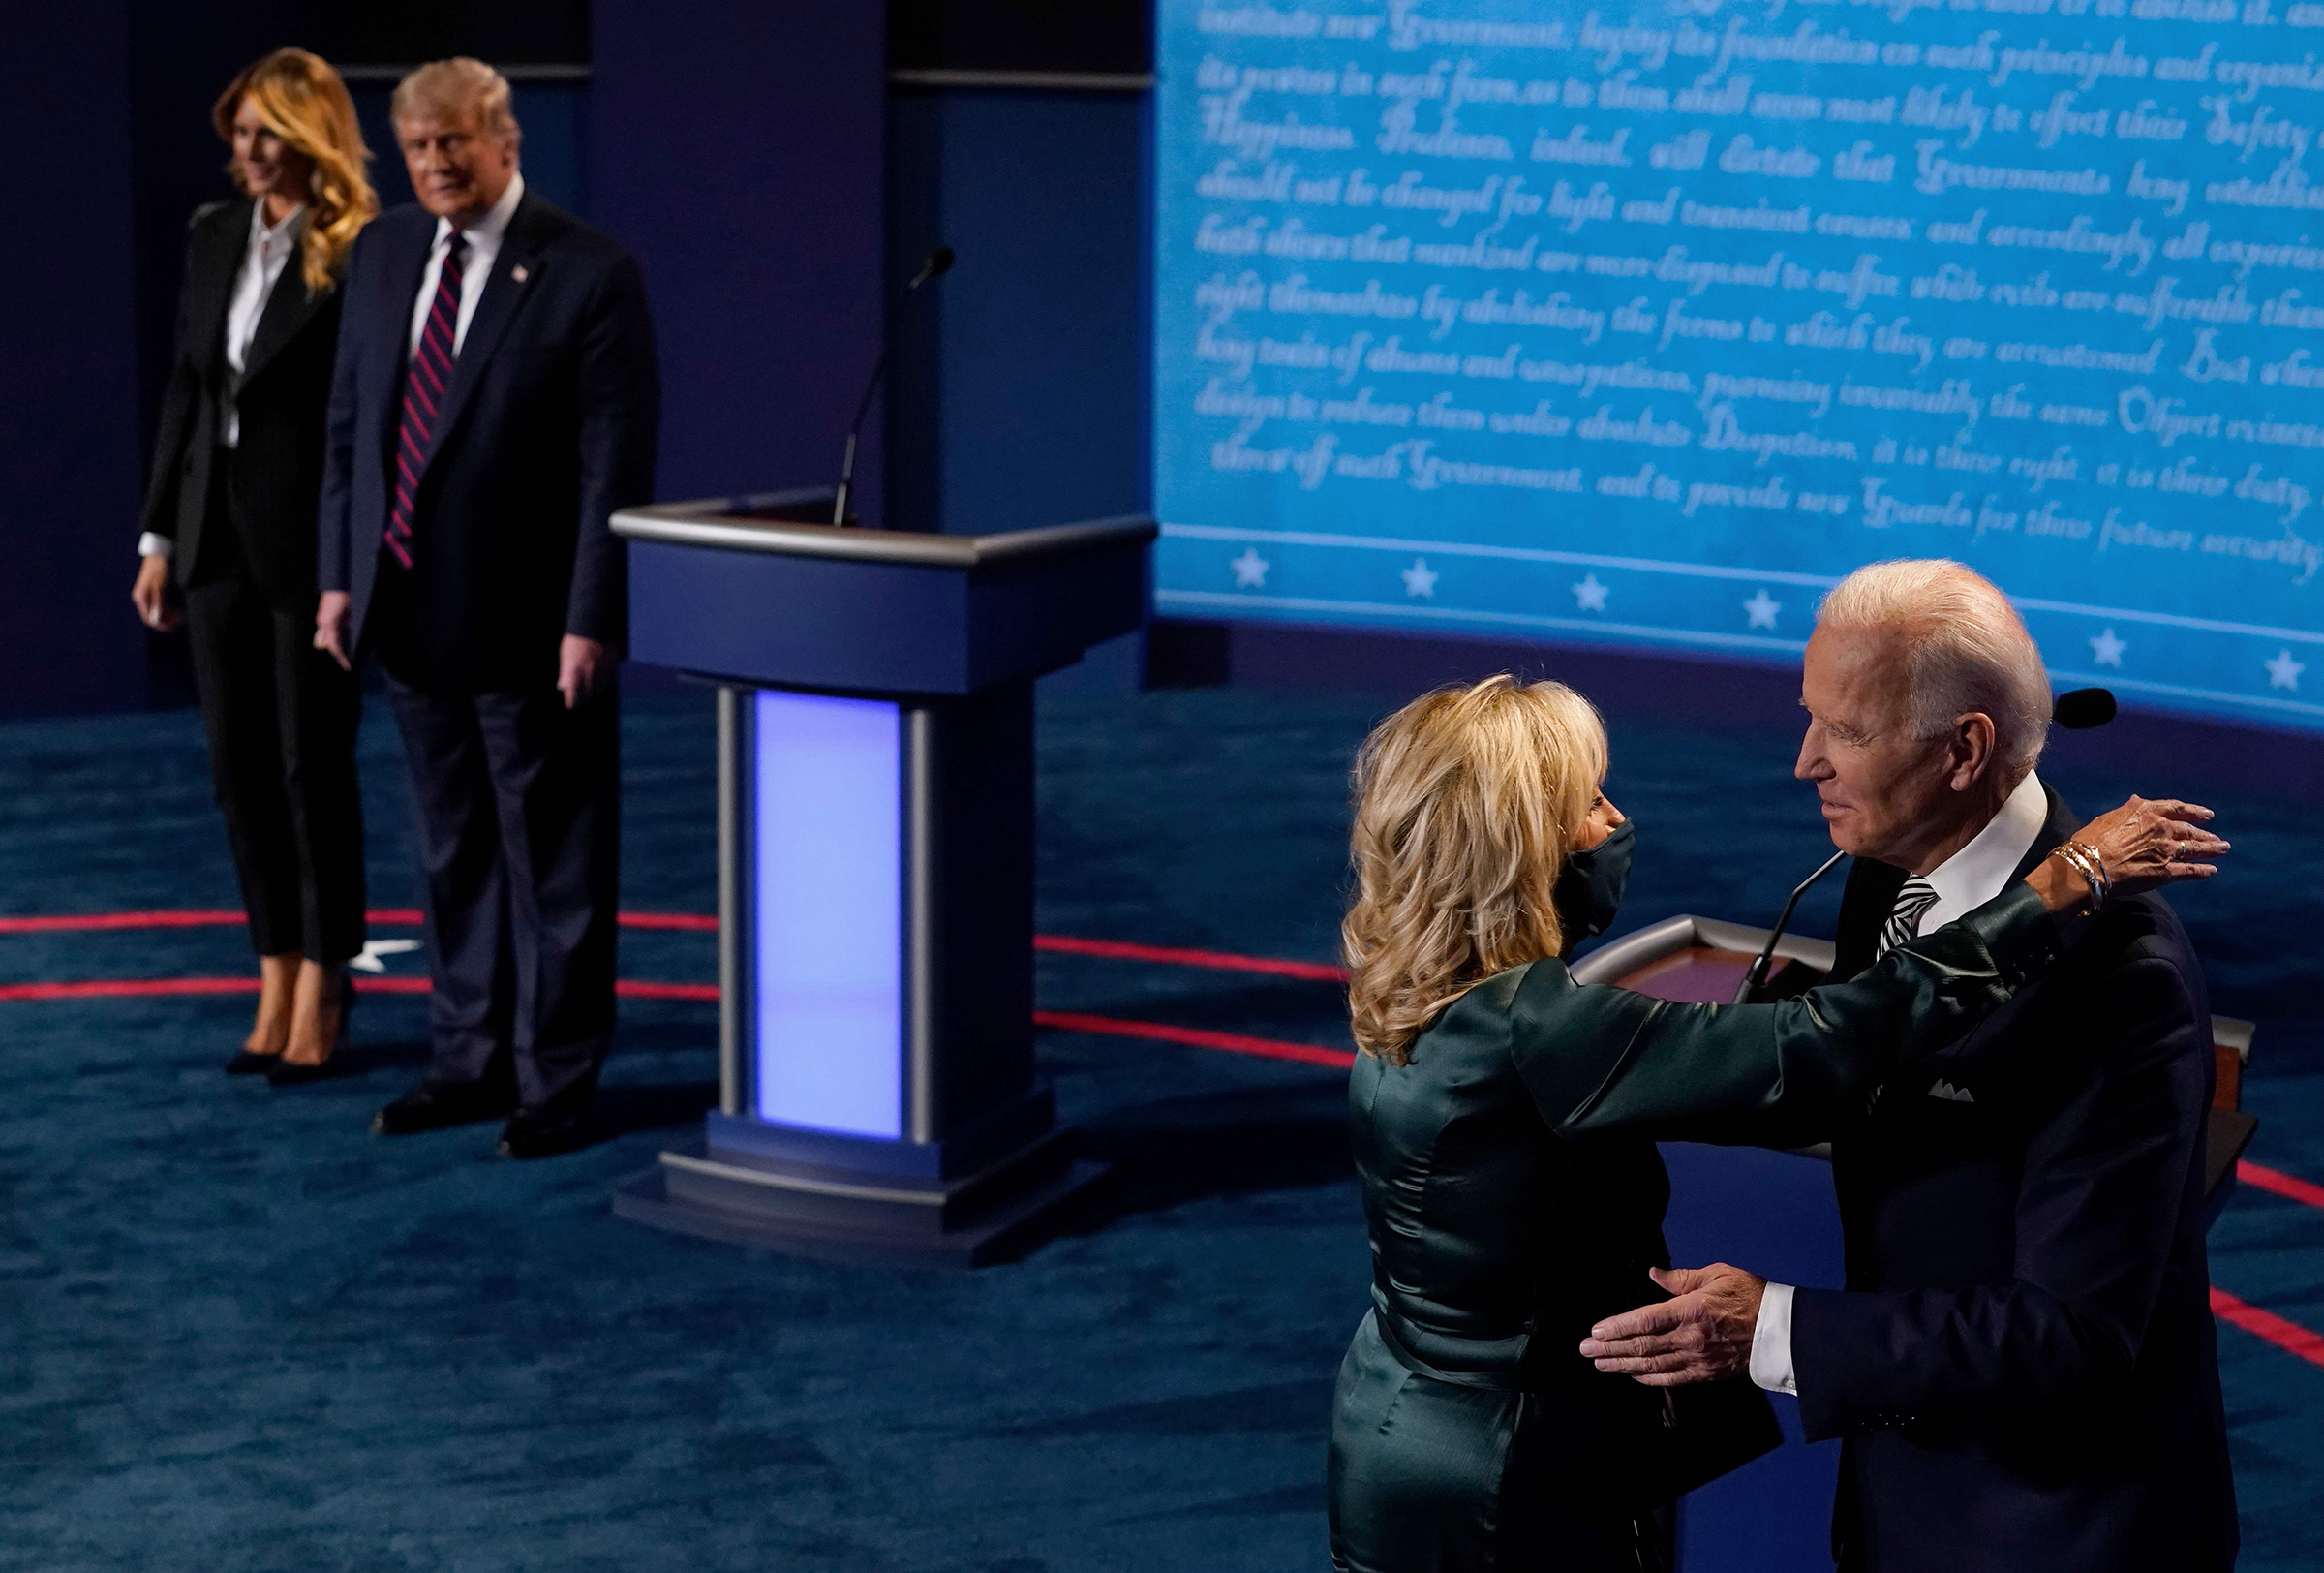 First Lady Melania Trump and President Donald Trump look on as Democratic presidential candidate and former Vice President Joe Biden hugs his wife, Jill Biden, after the first presidential debate in Cleveland on Sept. 29, 2020.